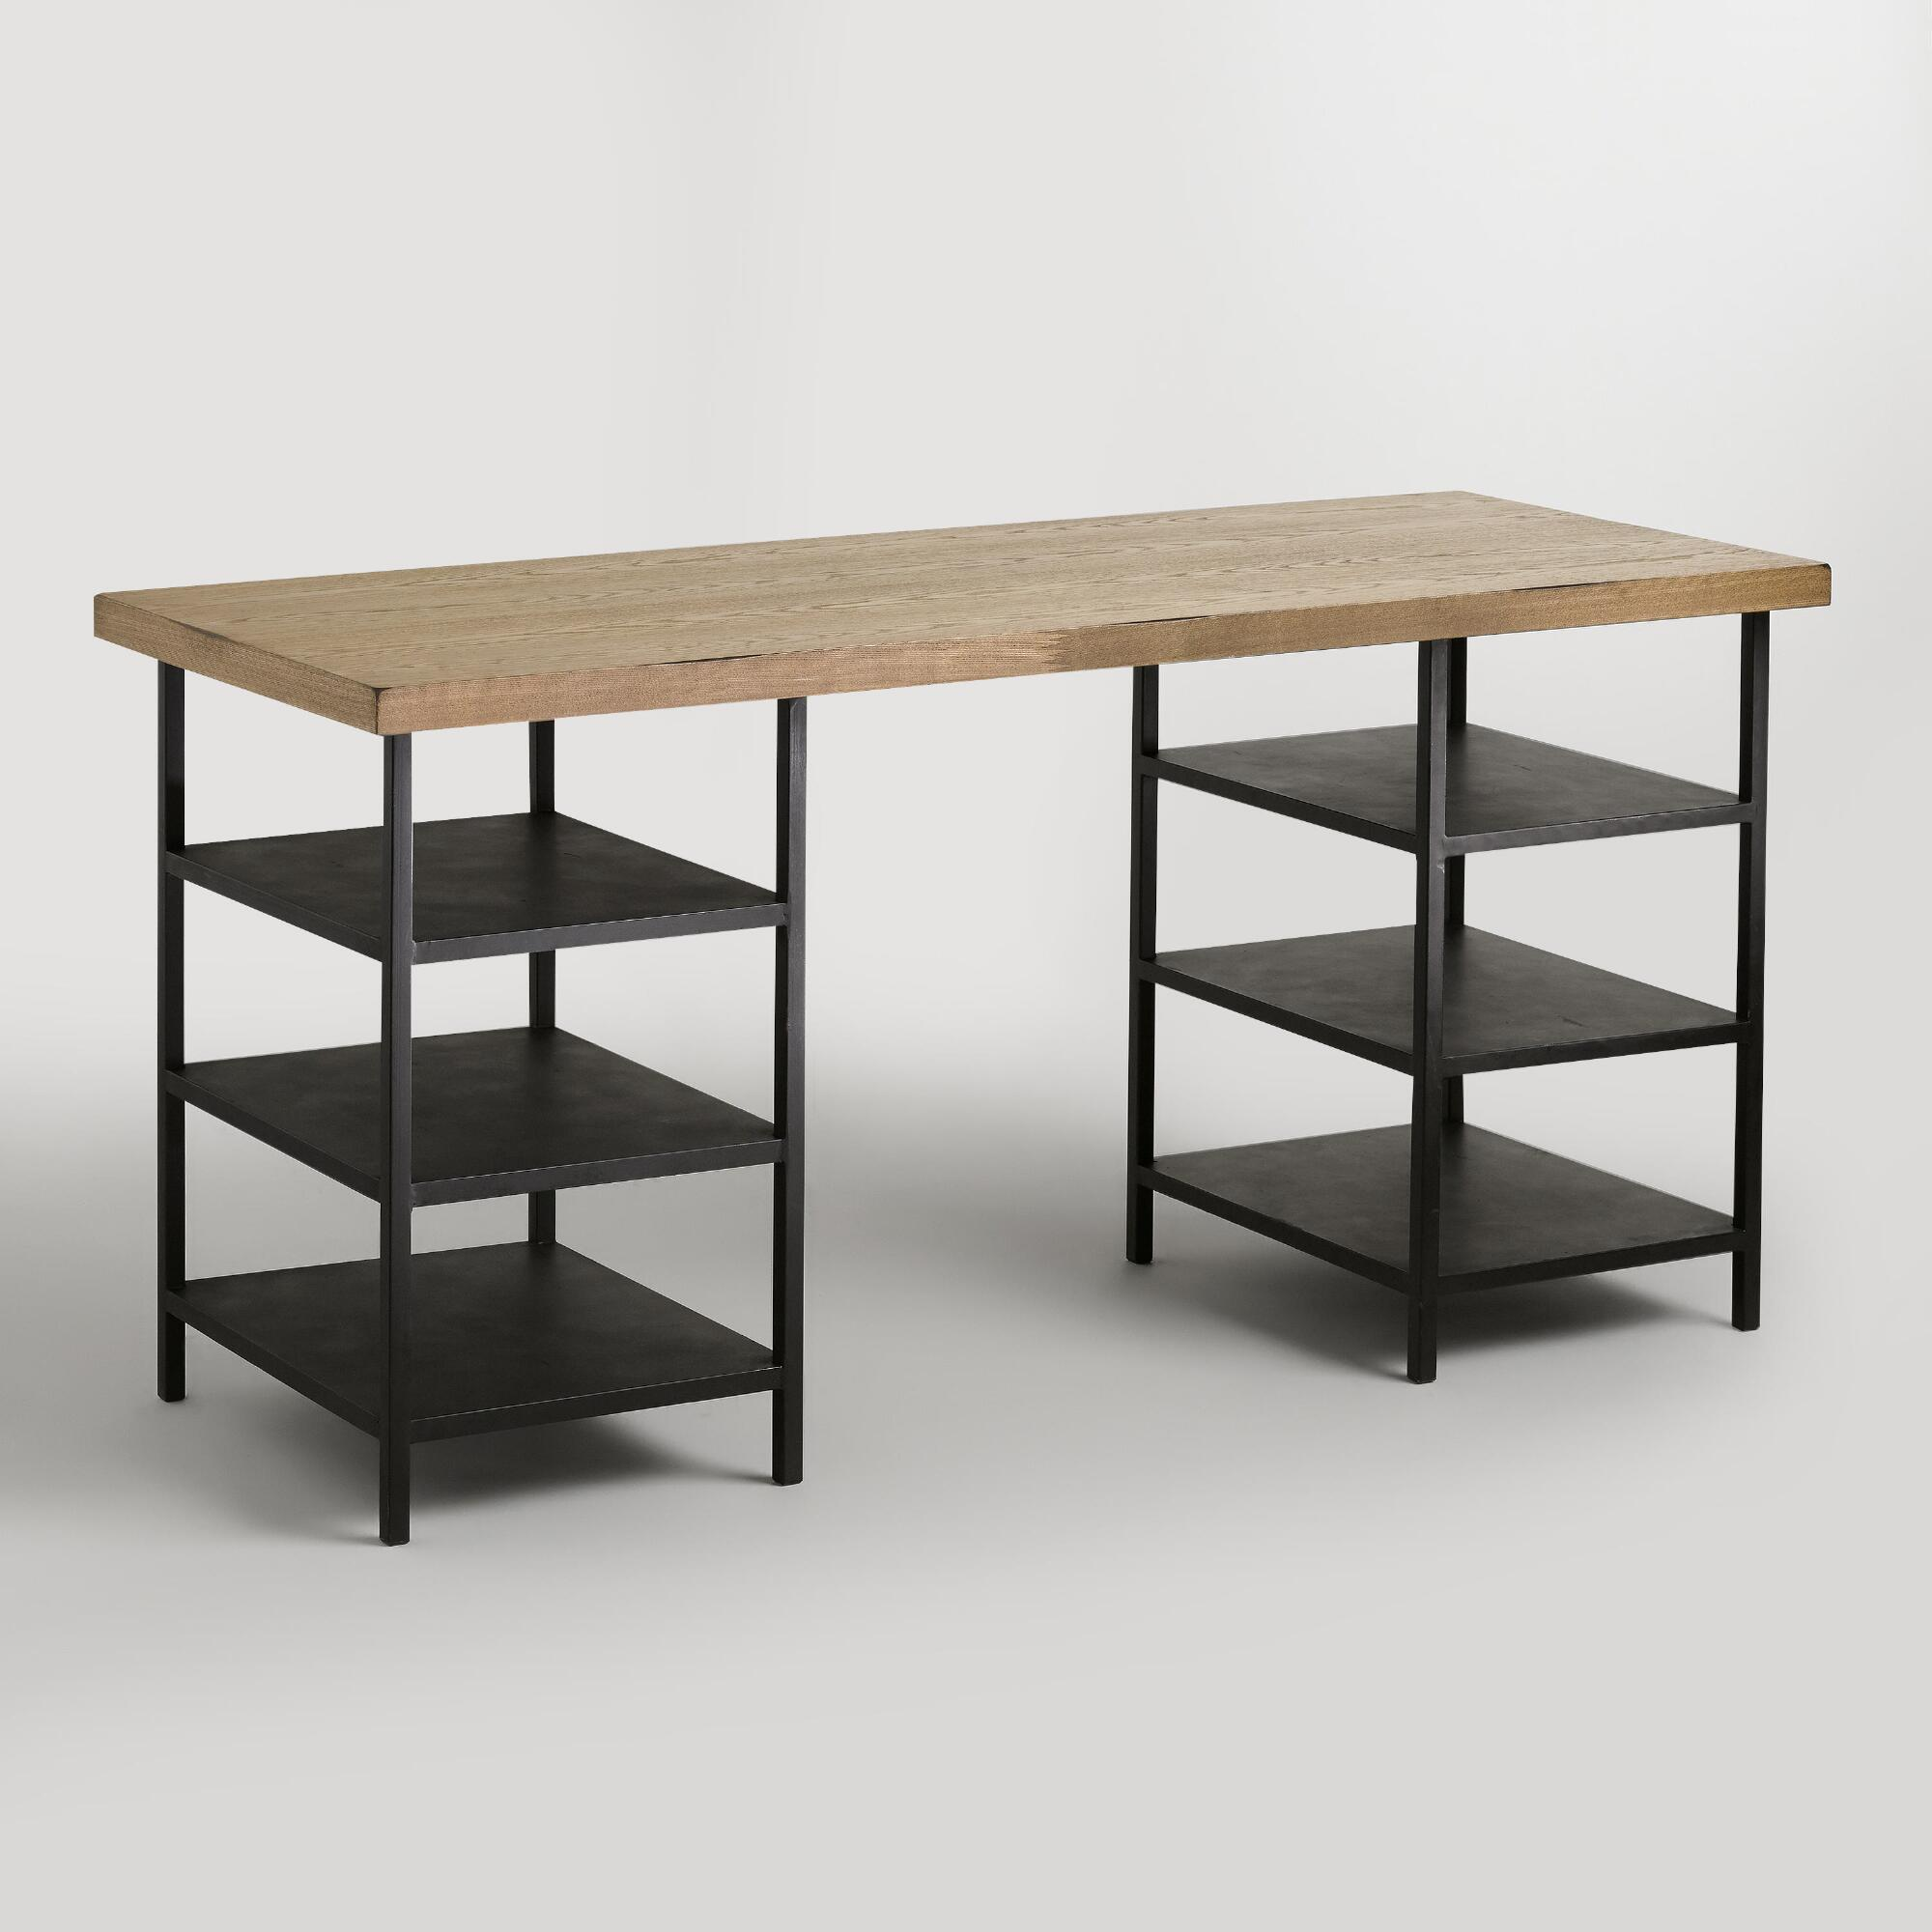 Natural Wood And Metal Shelf Colton Mix Match Desk World Market - World market industrial table